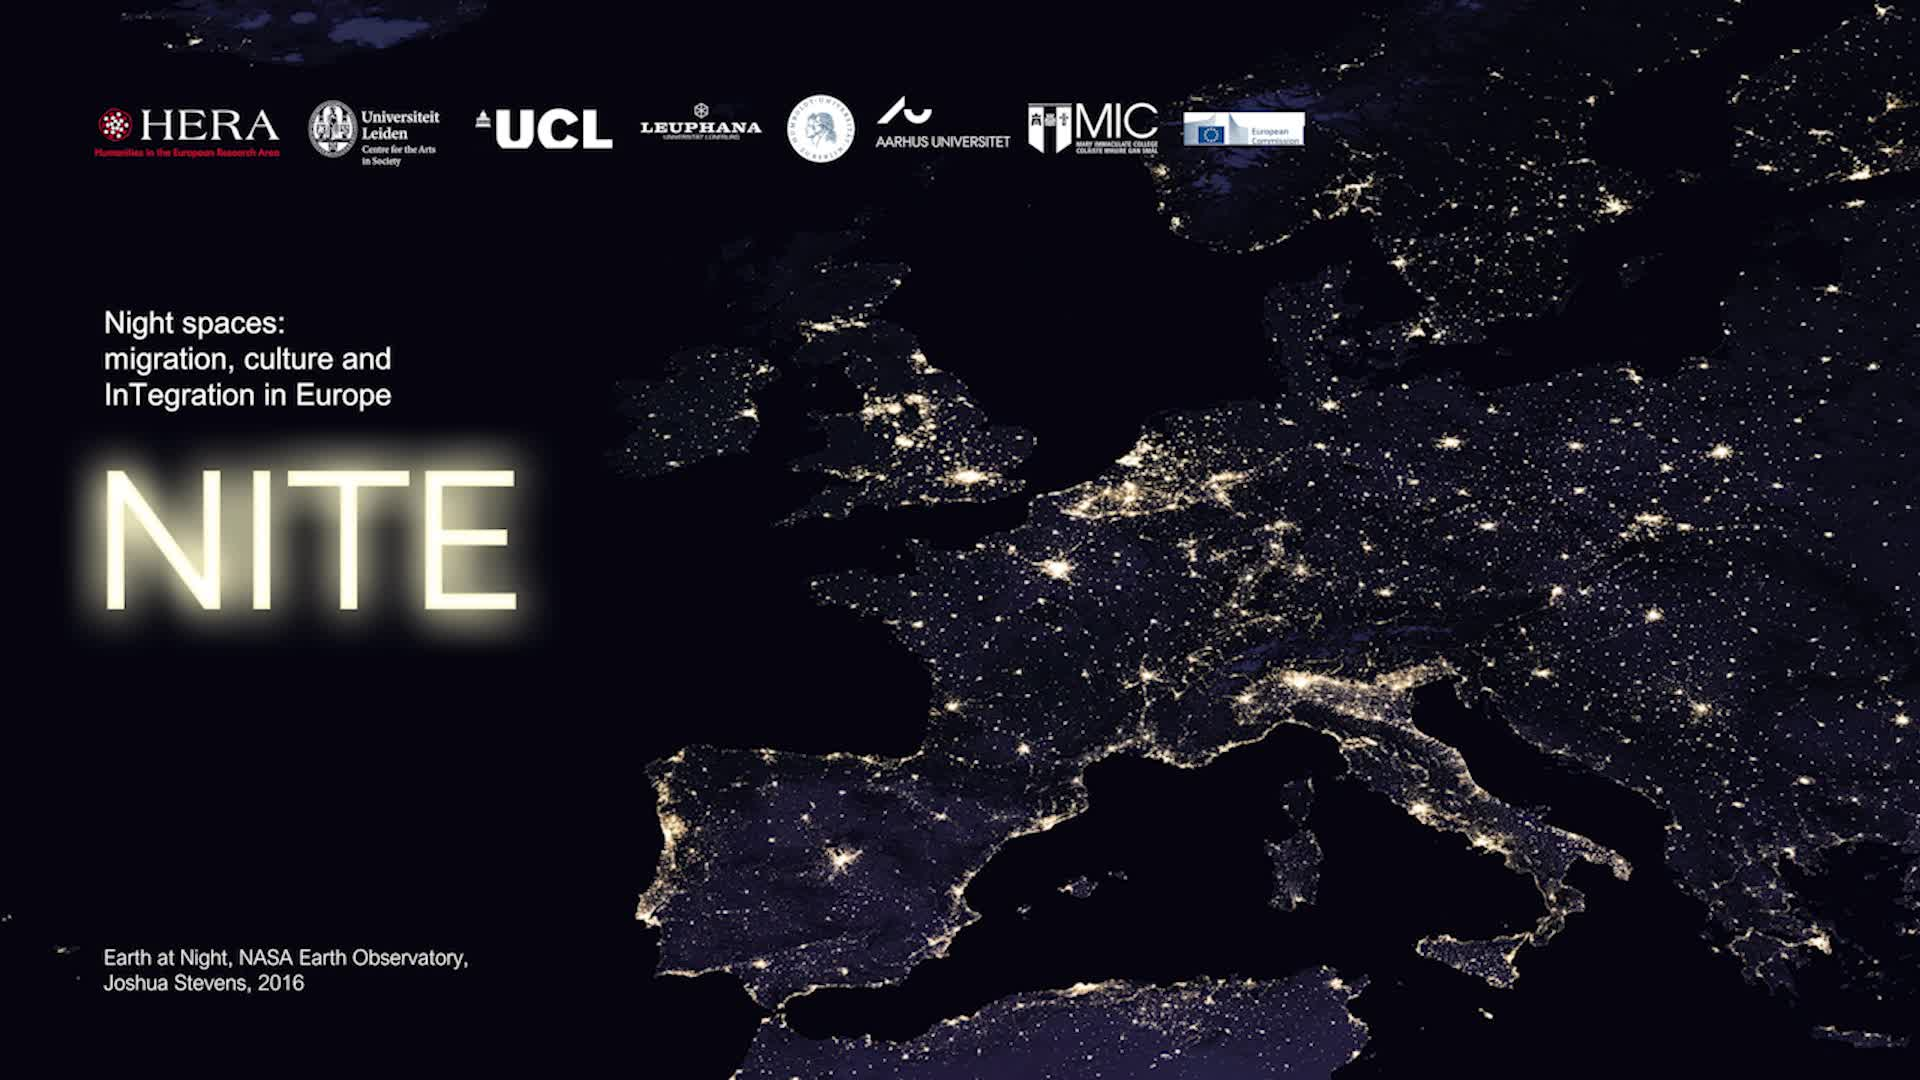 Night spaces: migration, culture and InTegration in Europe (NITE)